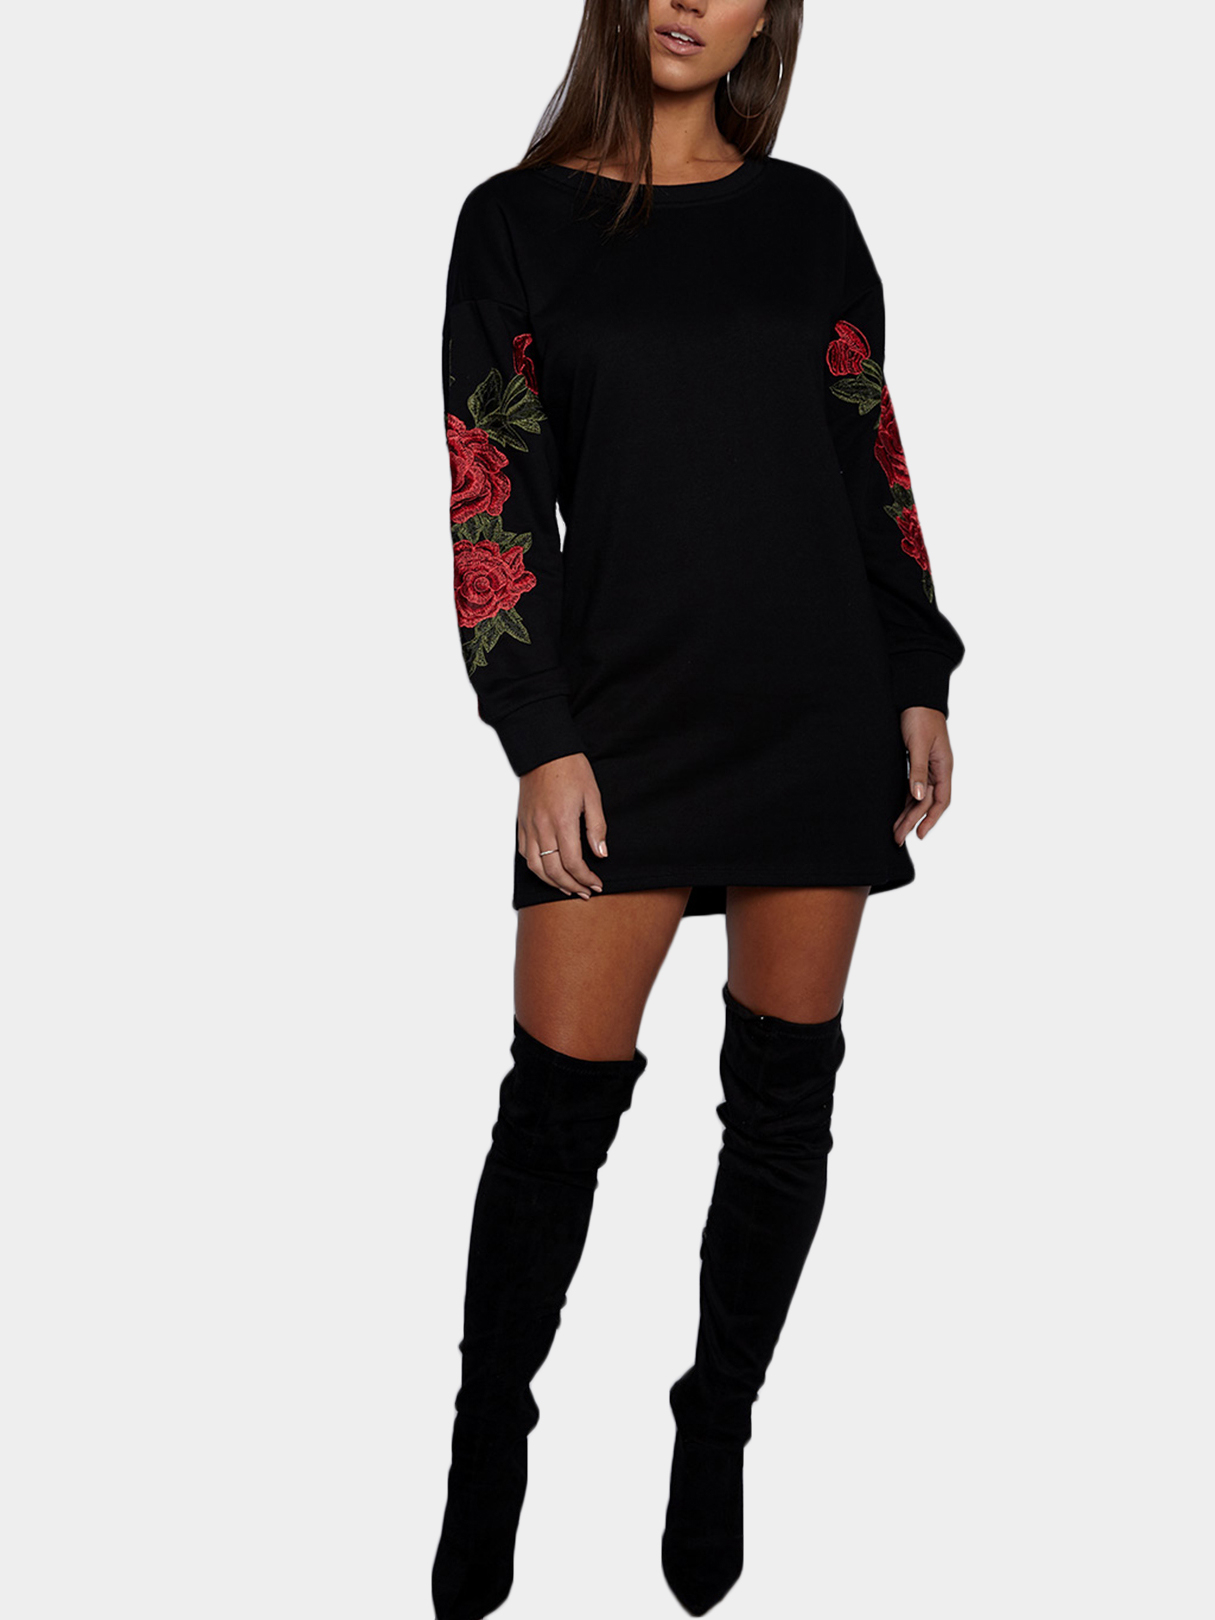 Black Rose Embroidered Long Sleeves Sweatshirt